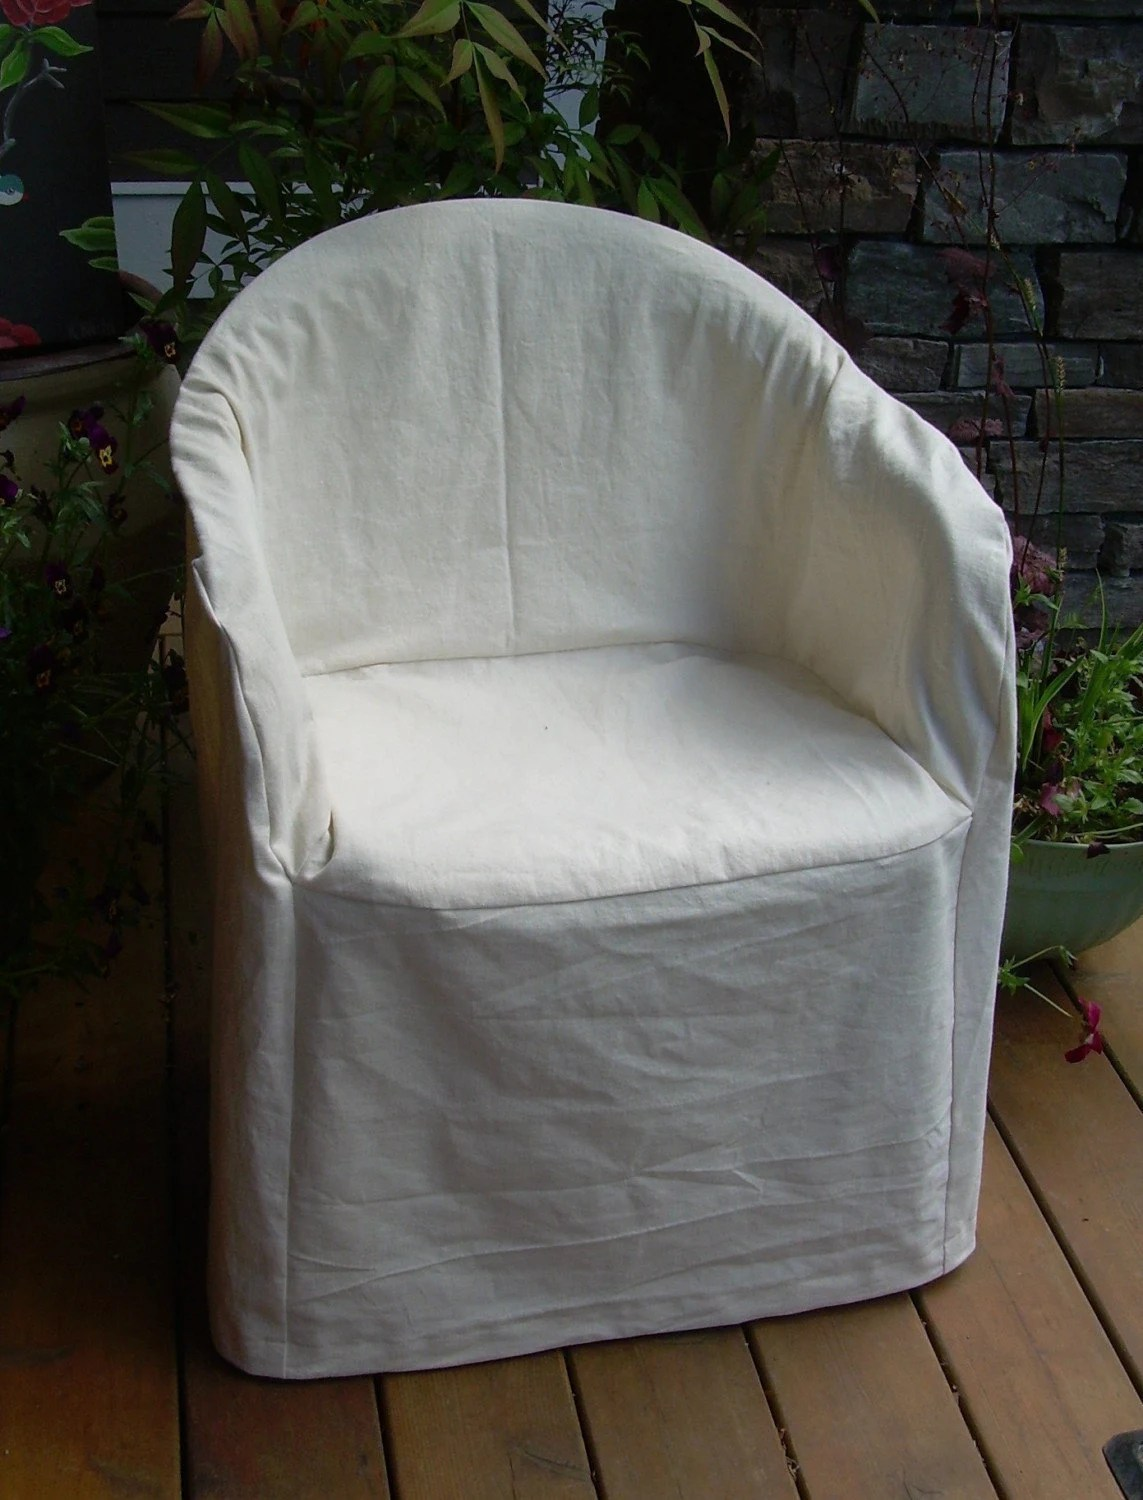 Slipcover Pattern Outdoor Resin Chair LowBack by nikkidesigns